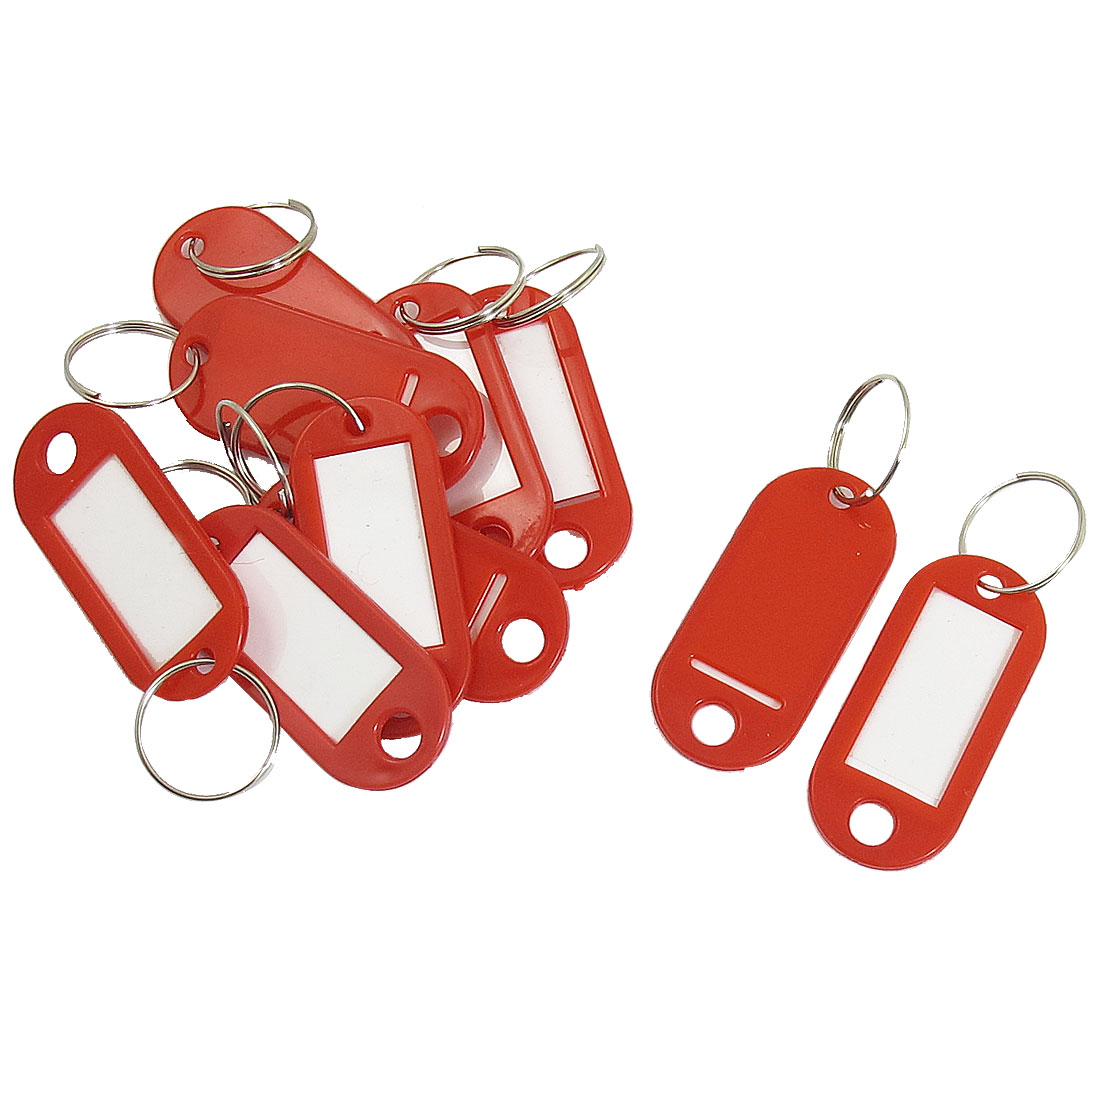 10 Pcs Key ID Label Tags Split Ring Keyring Keychain Red